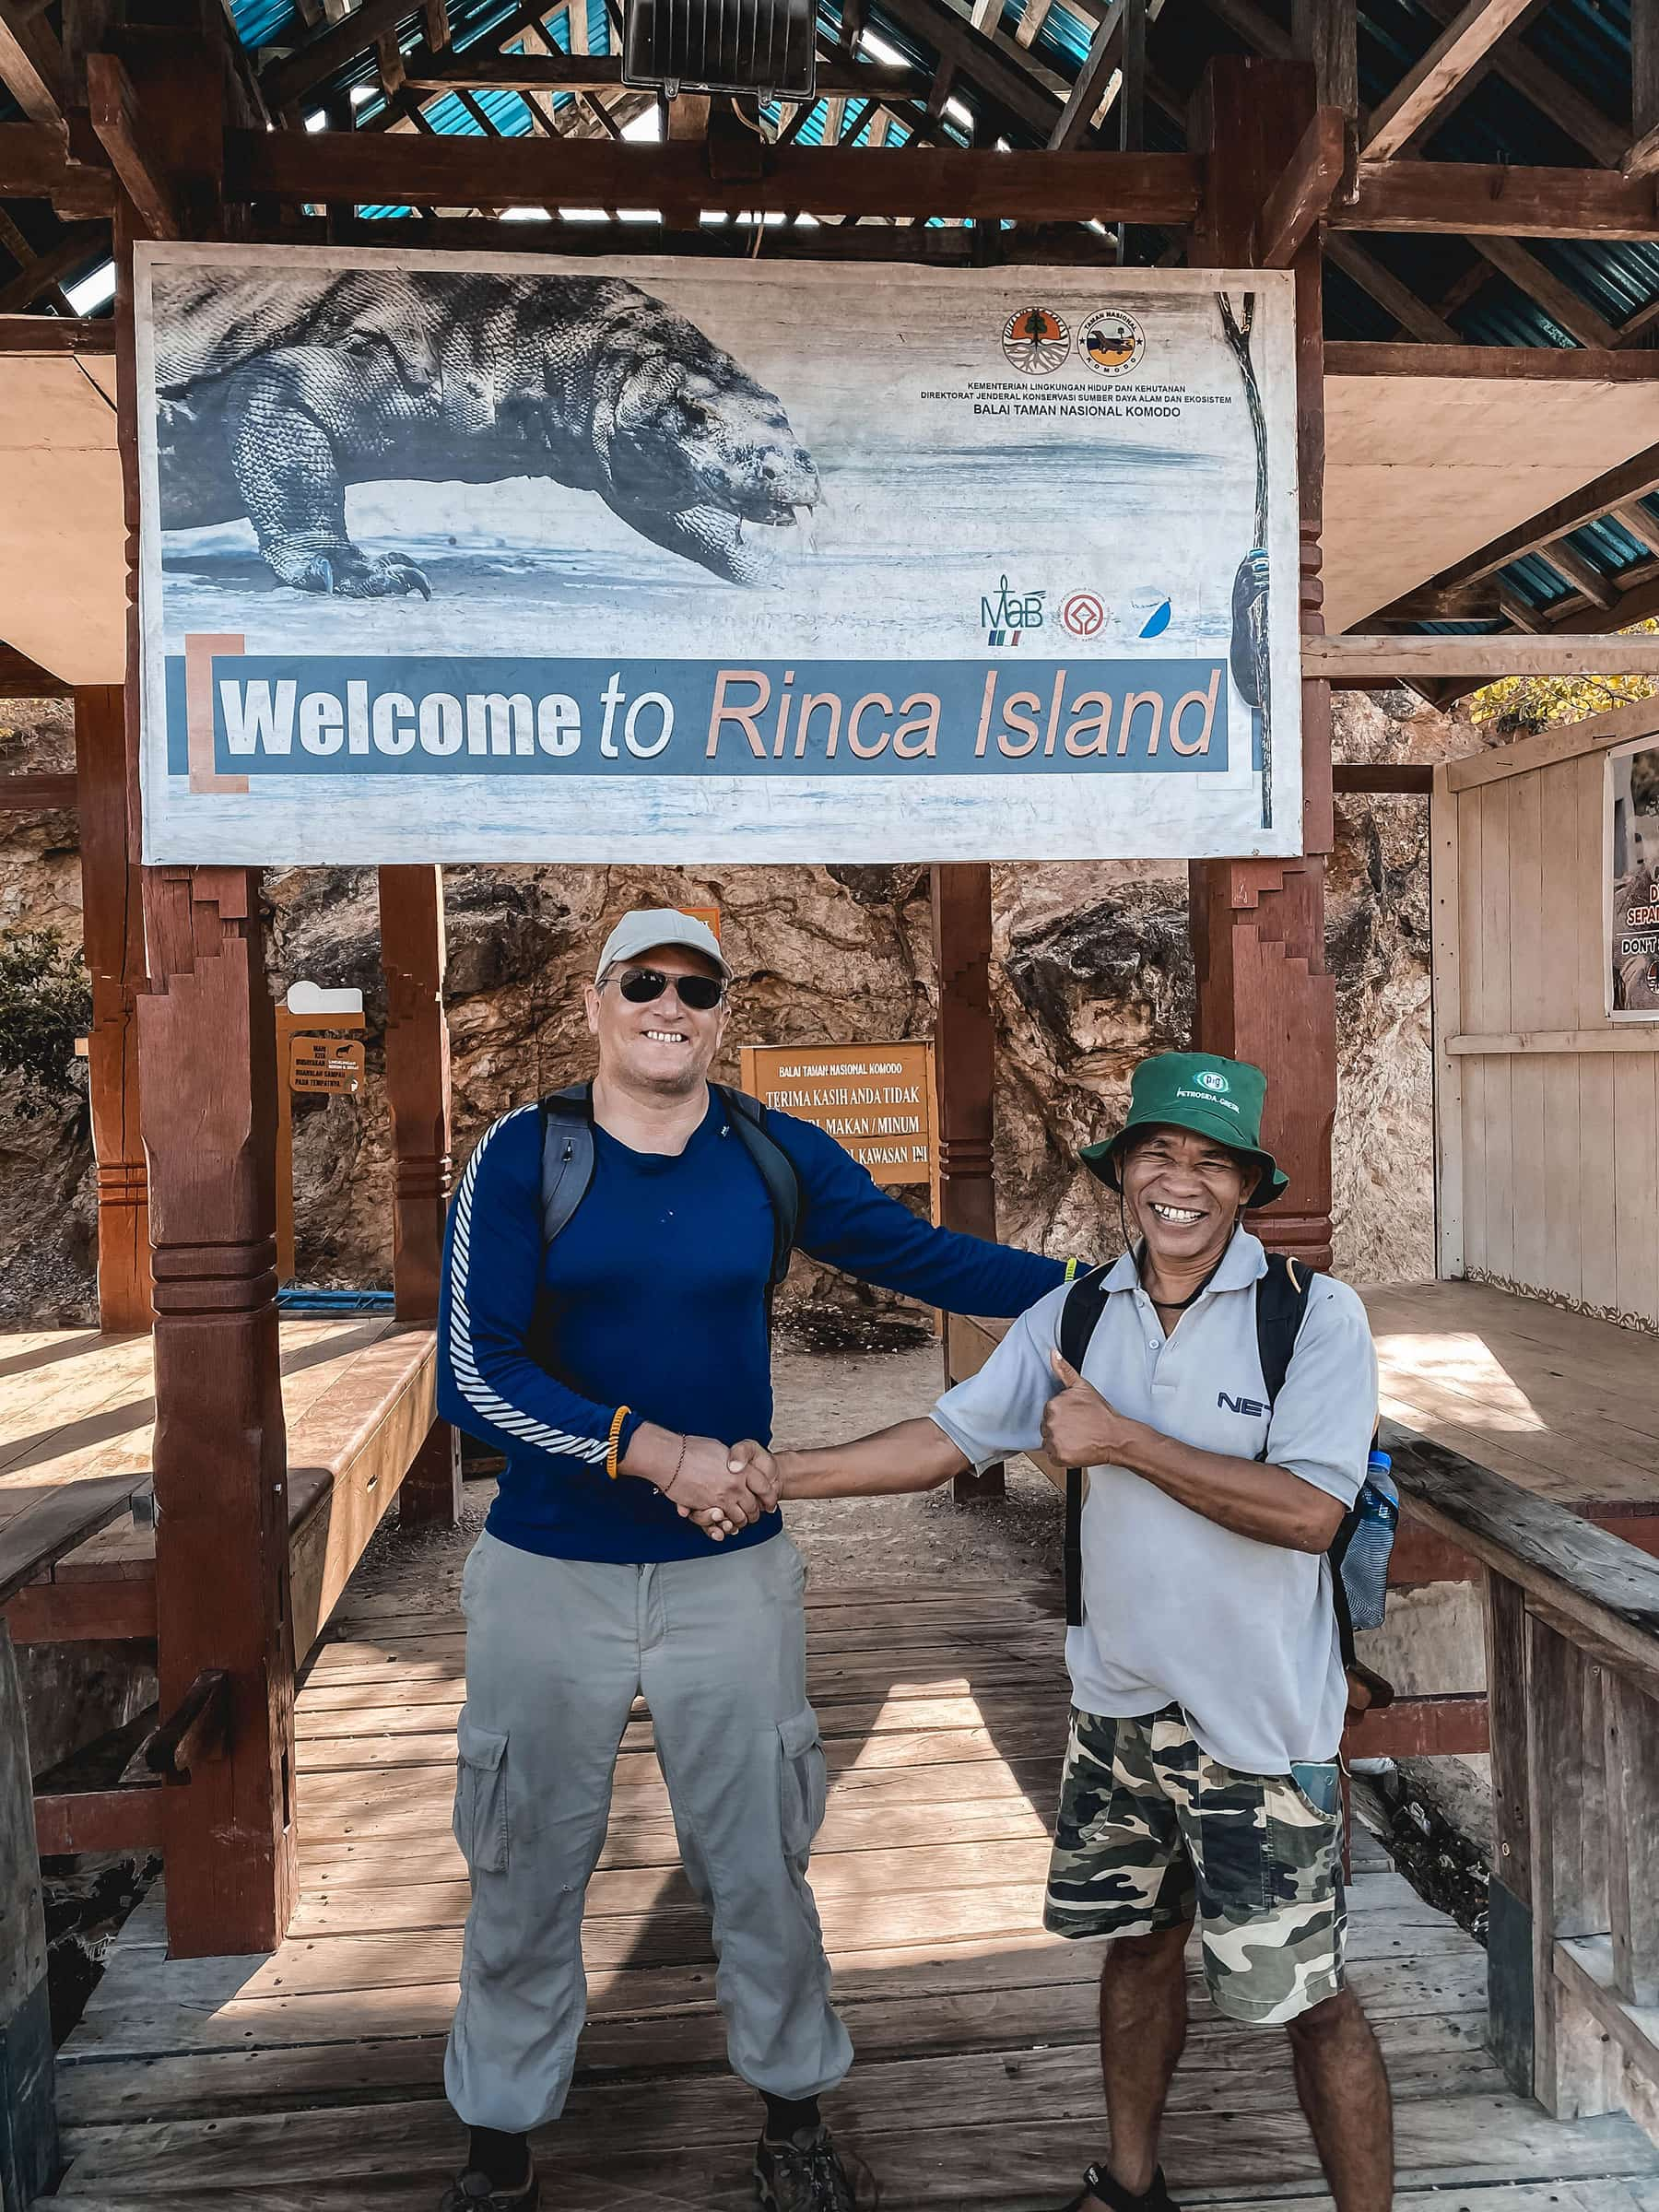 Traveller shaking hands with a guide on wooden walkway under a sign for rinca island